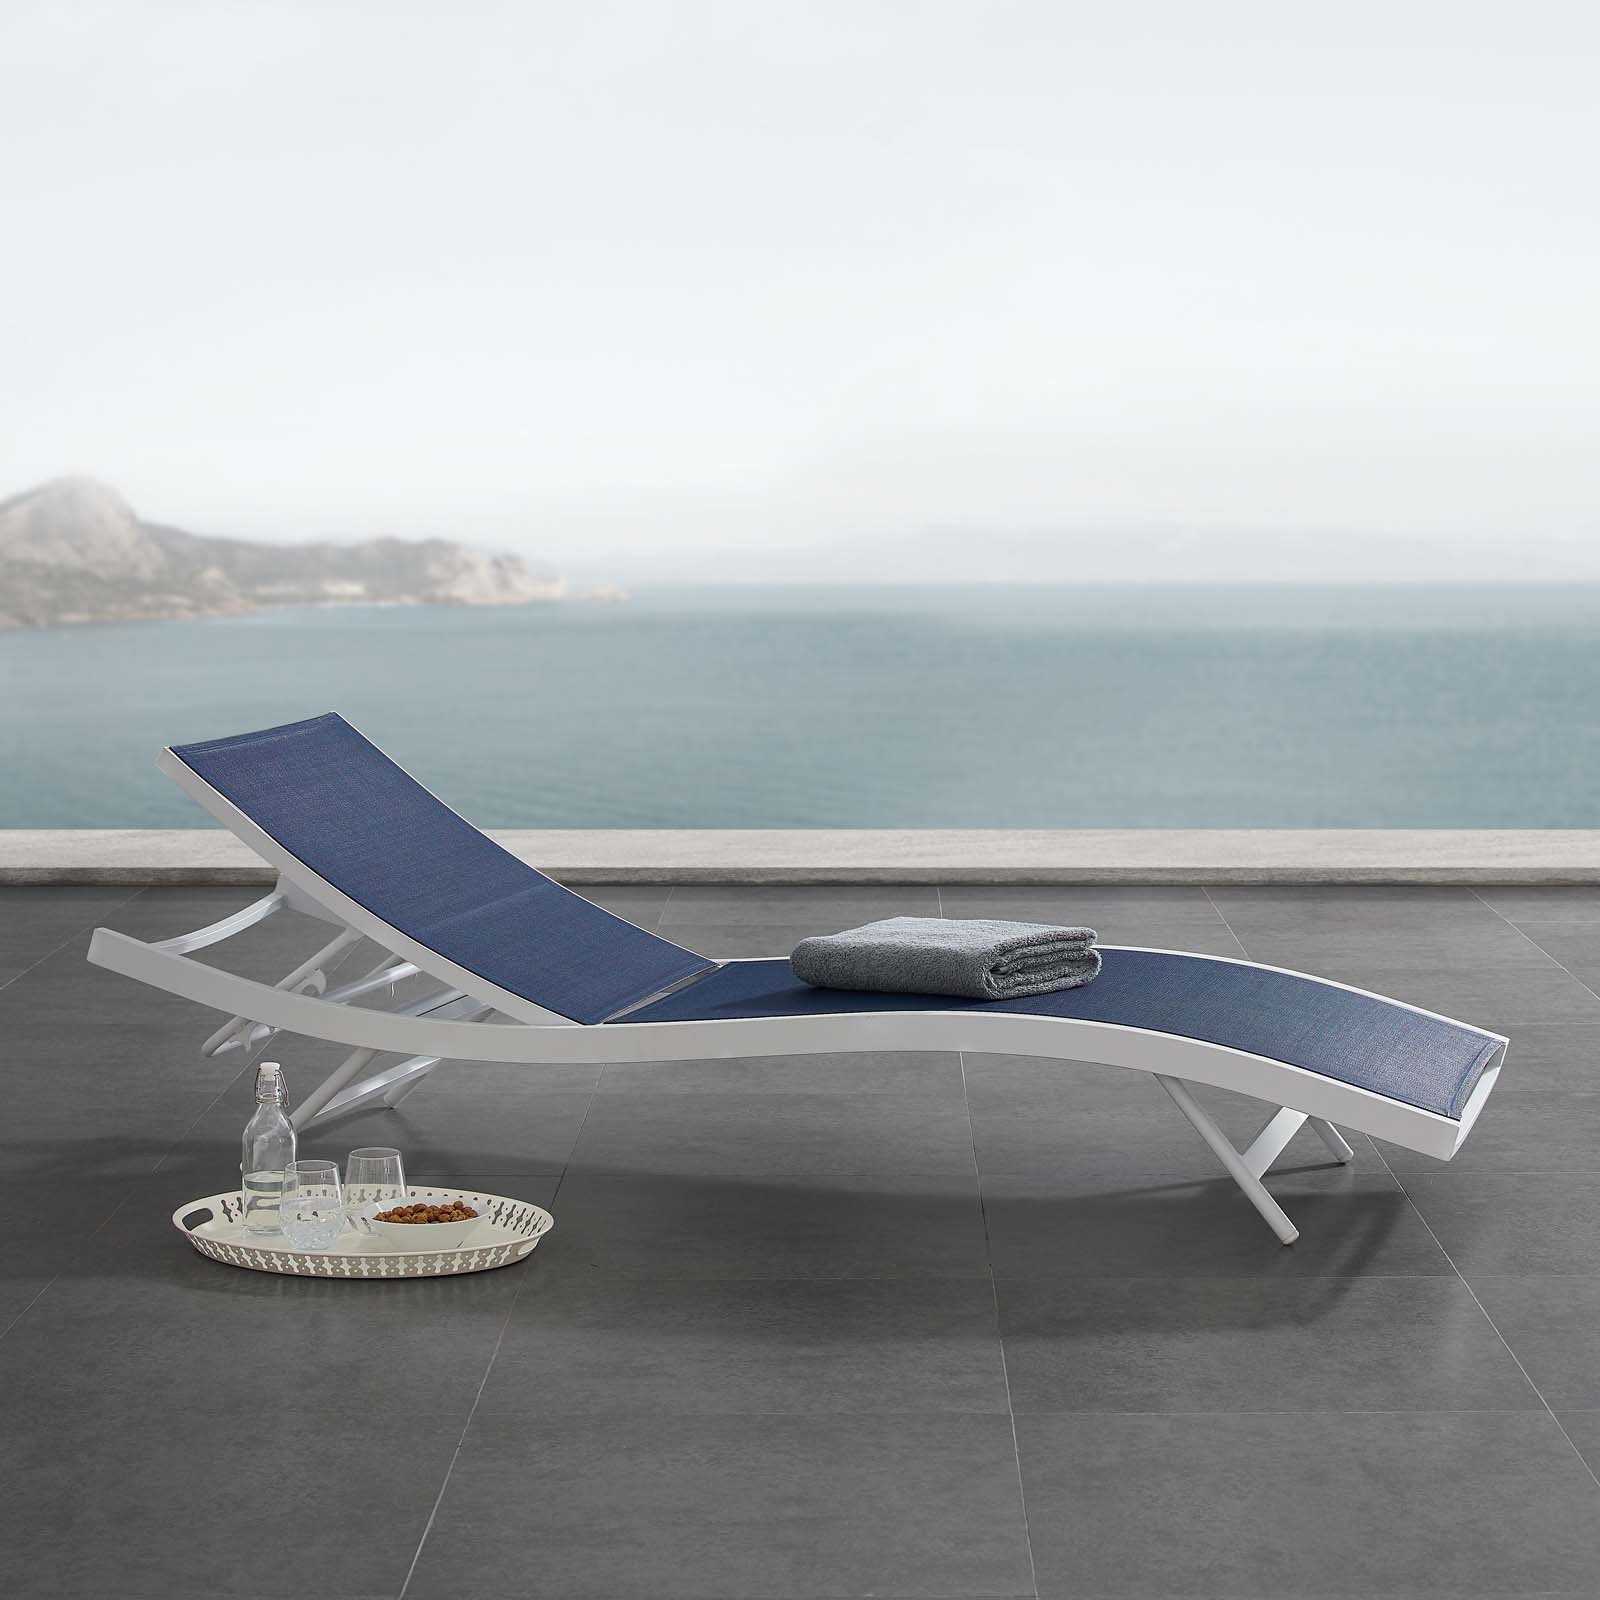 Glimpse Outdoor Patio Mesh Chaise Lounge Chair For Best And Newest Glimpse Outdoor Patio Mesh Chaise Lounge Chairs (Gallery 3 of 25)